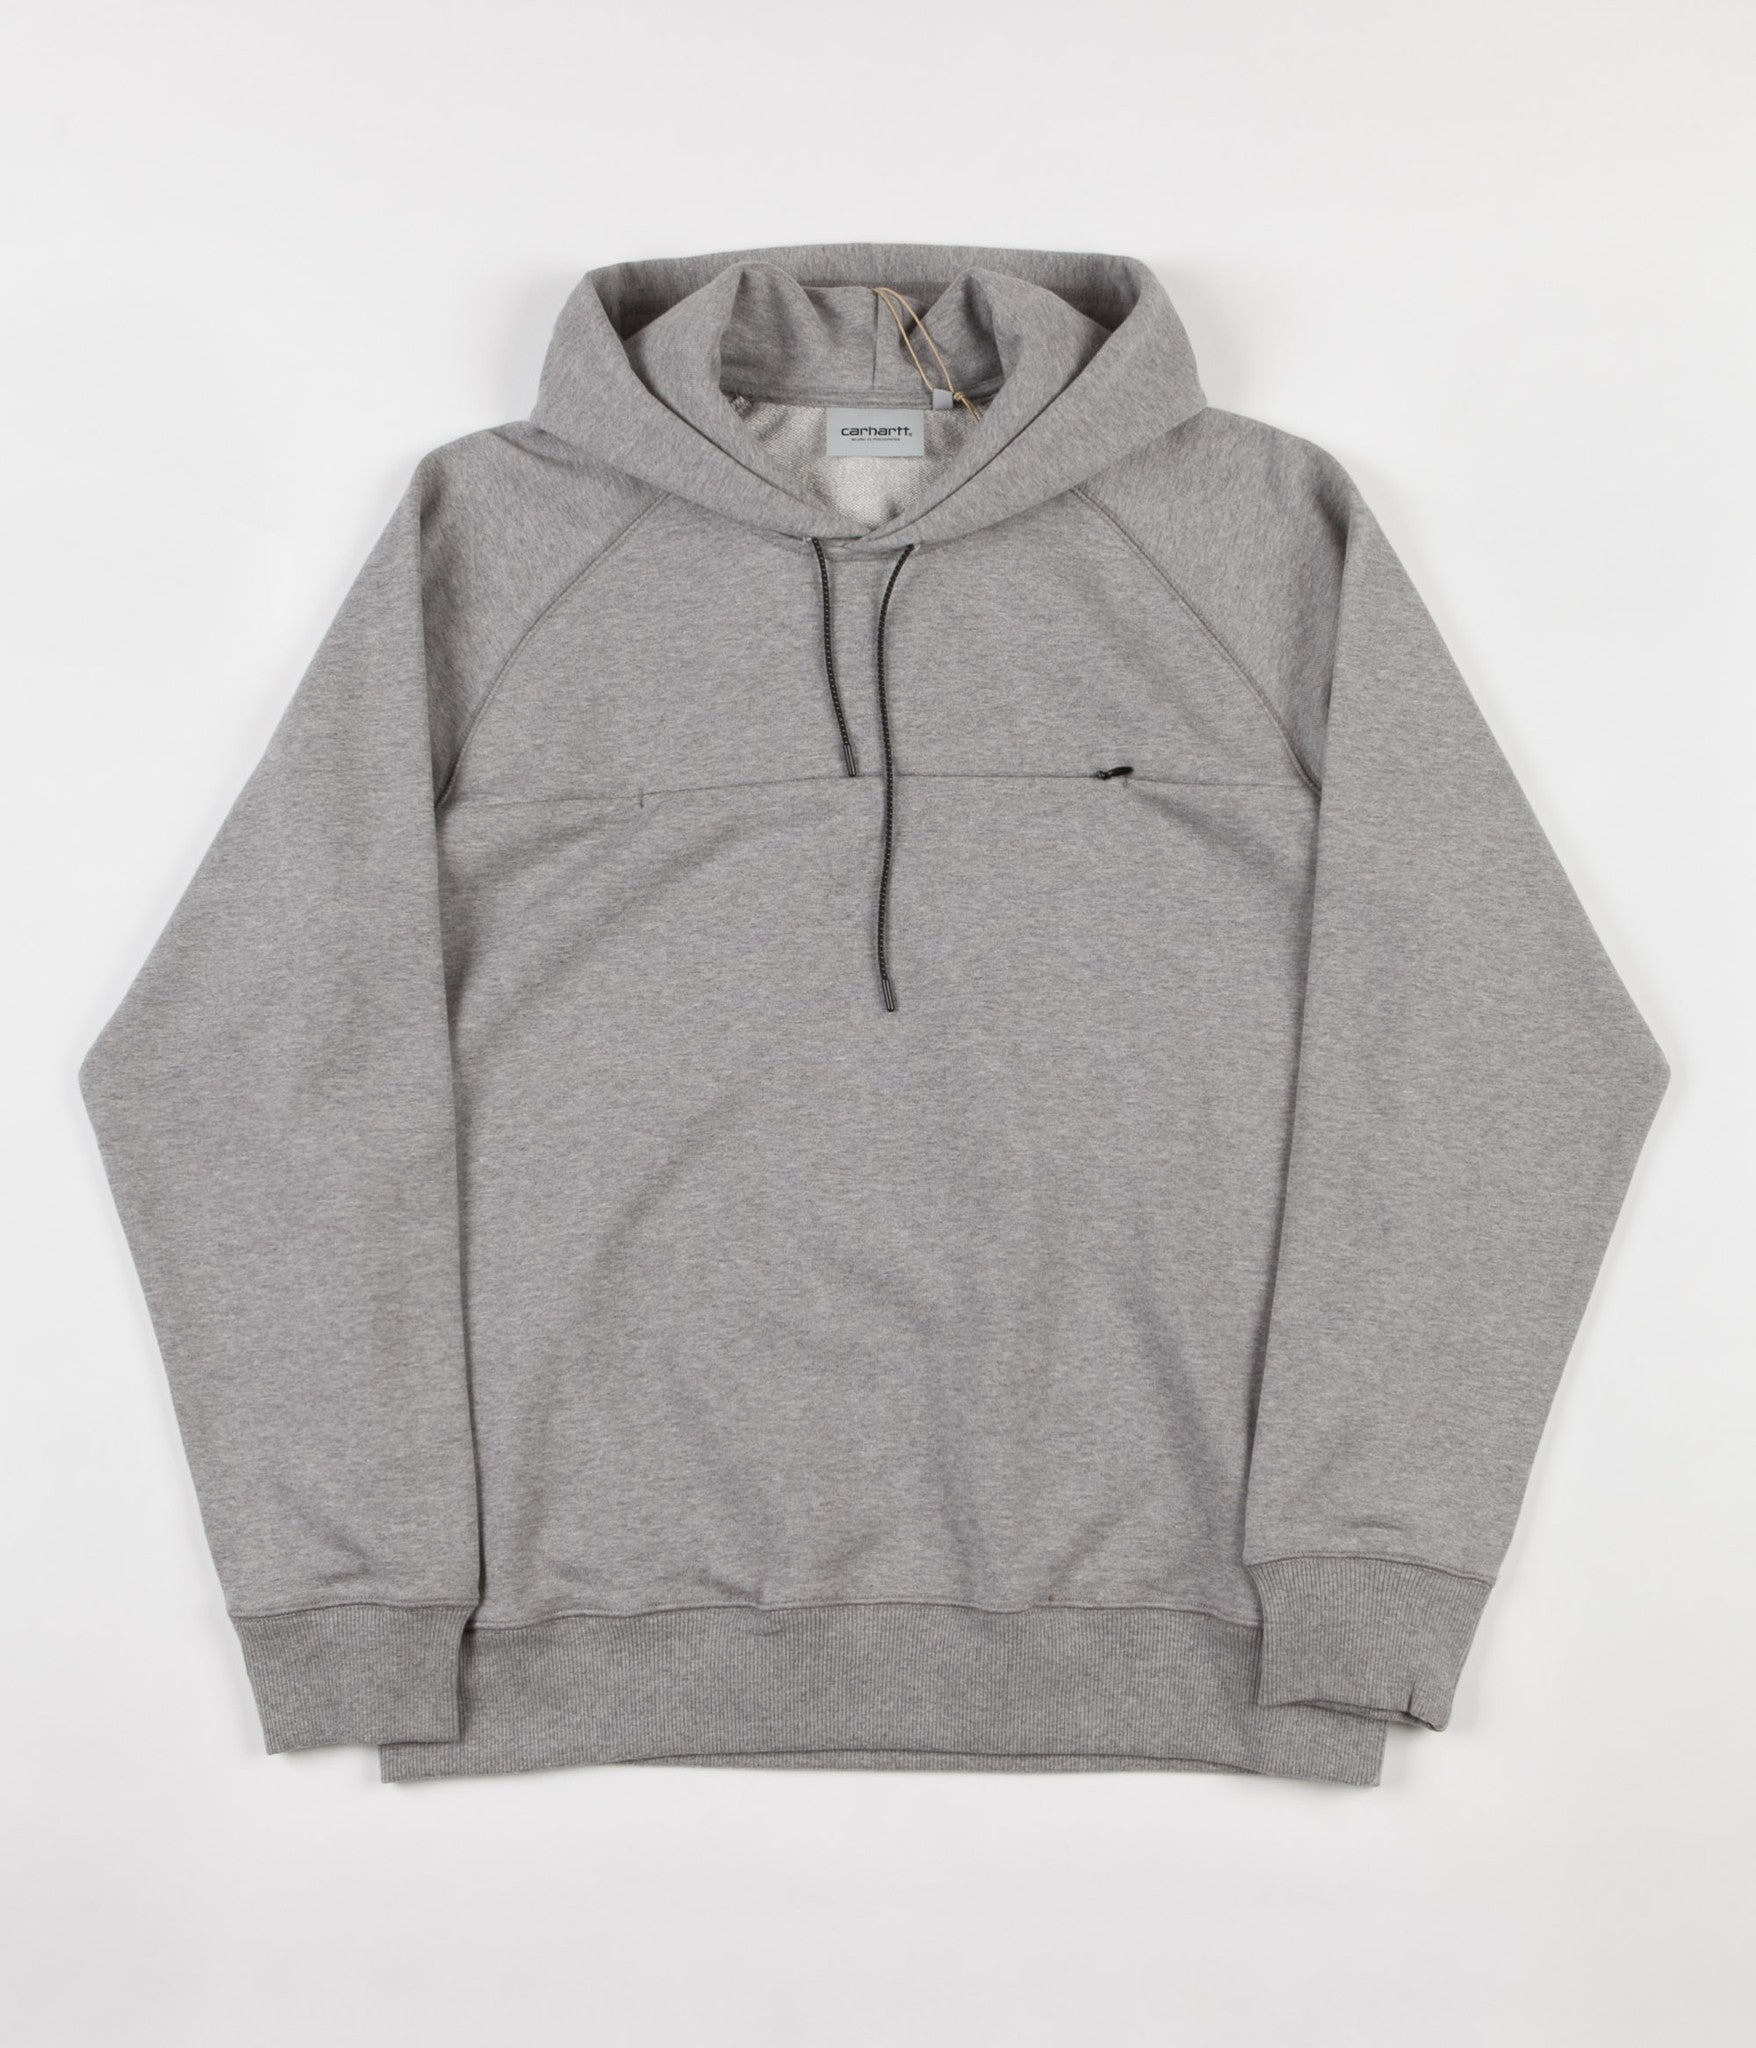 Carhartt Hooded Sweatshirt Grey Heather Chrono ffwrqOZng